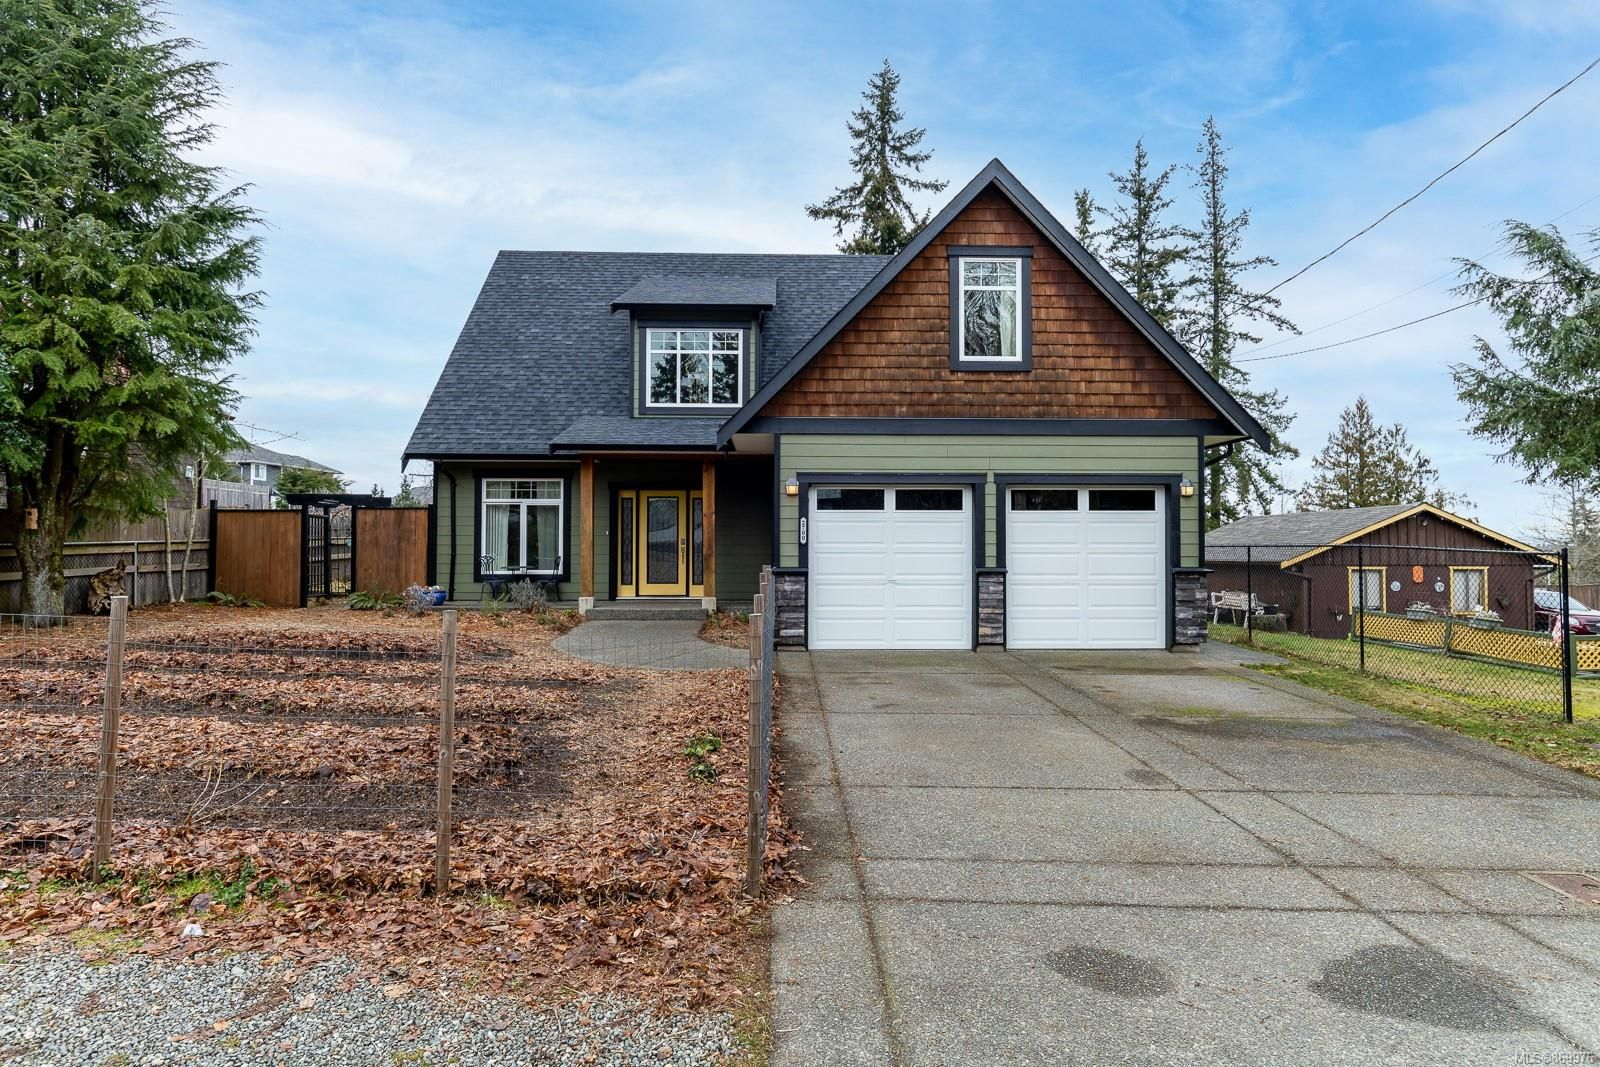 Main Photo: 2700 Ambleside Ave in : CV Cumberland House for sale (Comox Valley)  : MLS®# 869976